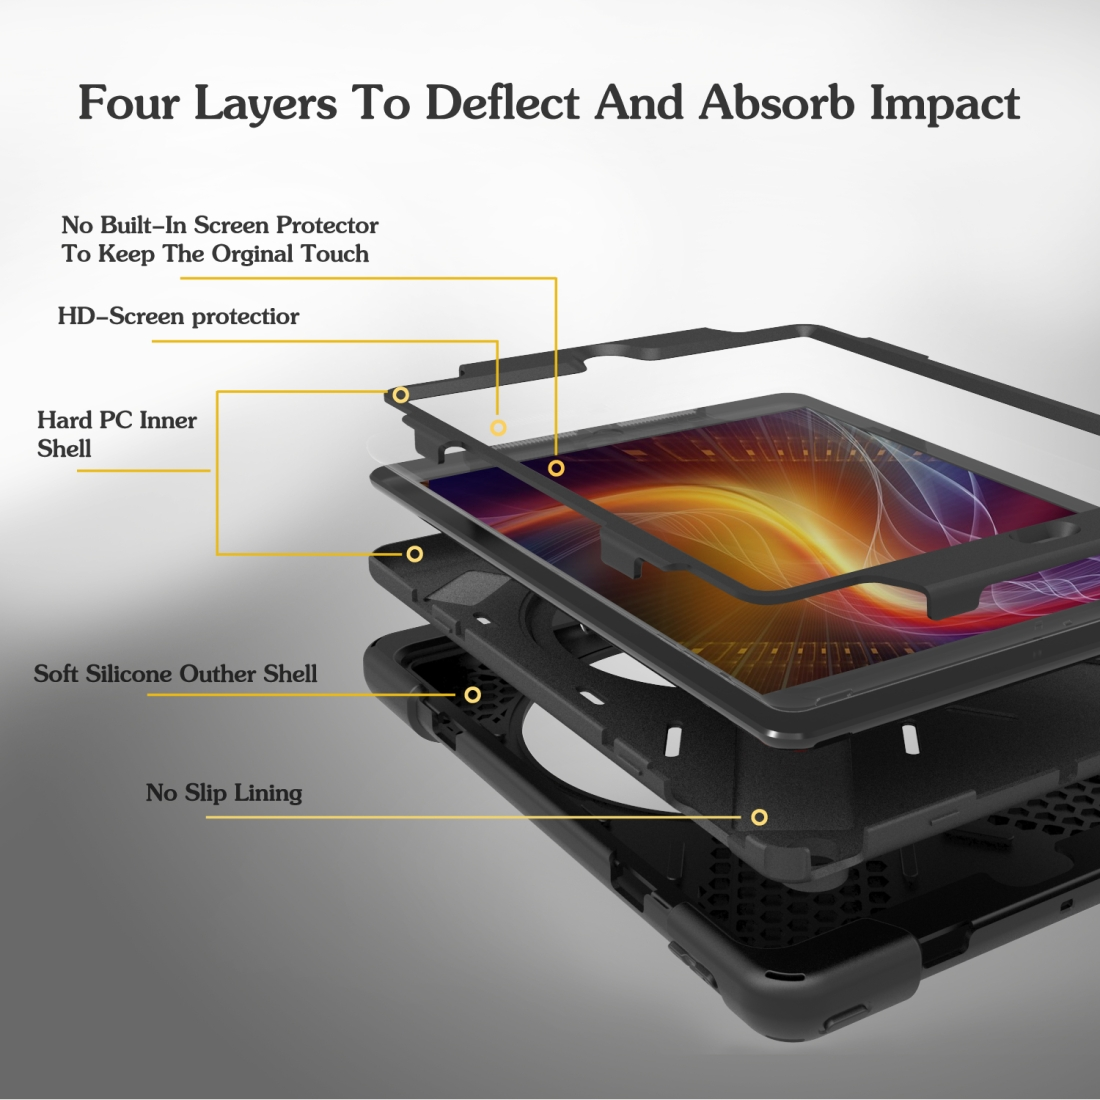 iPad 7th Generation Case (10.2 Inch) With A Protective Rotatable Design And Hand Strap (Black)